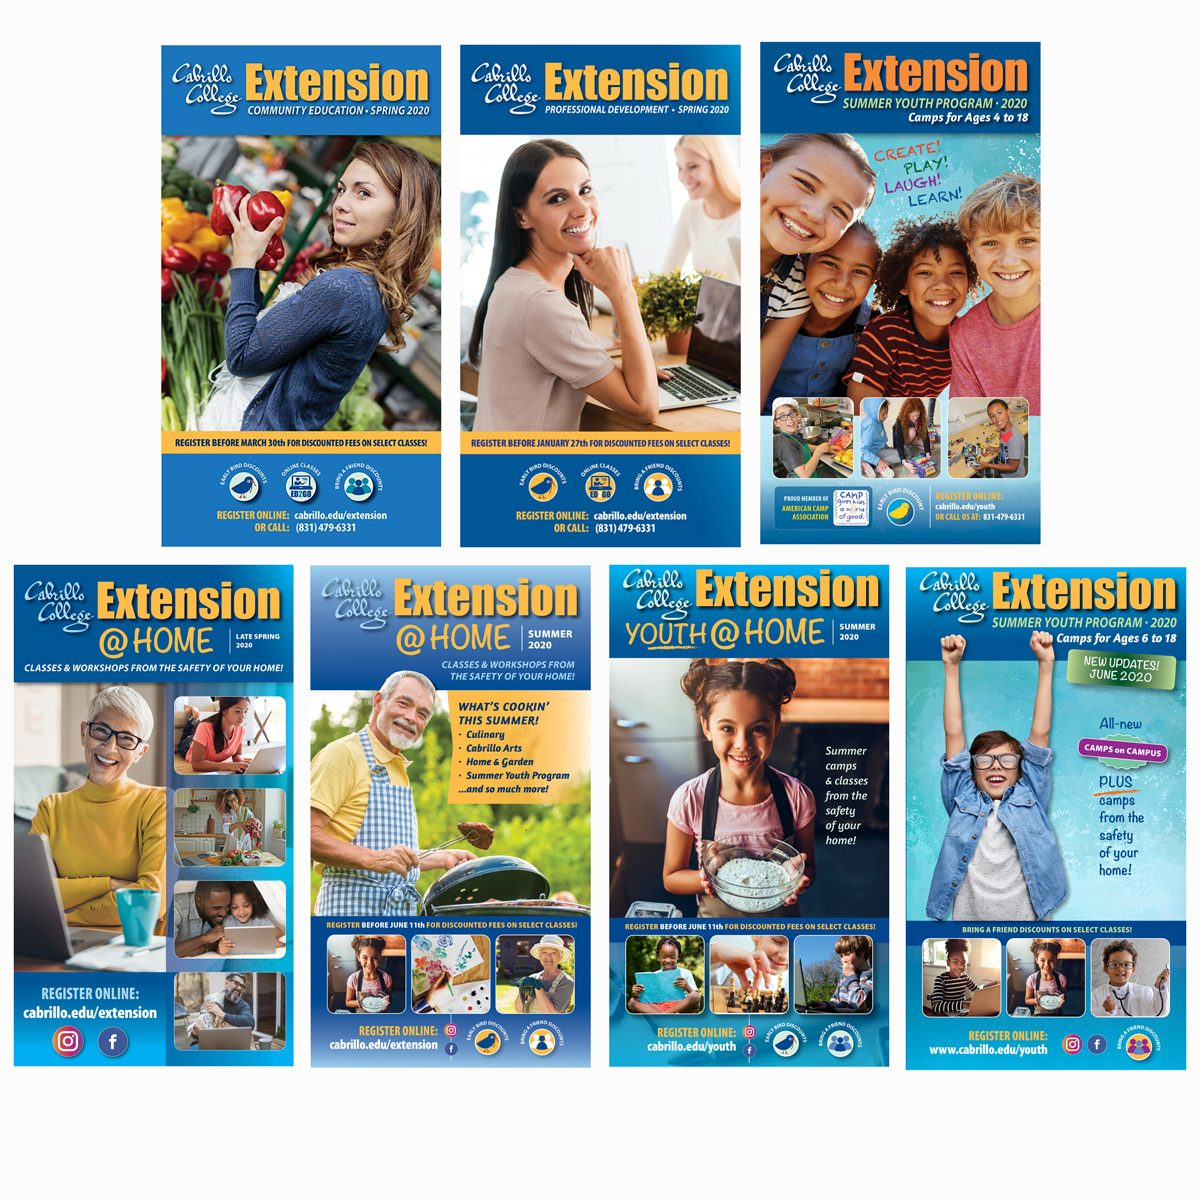 Cabrillo Extension catalogs produced for the year 2020